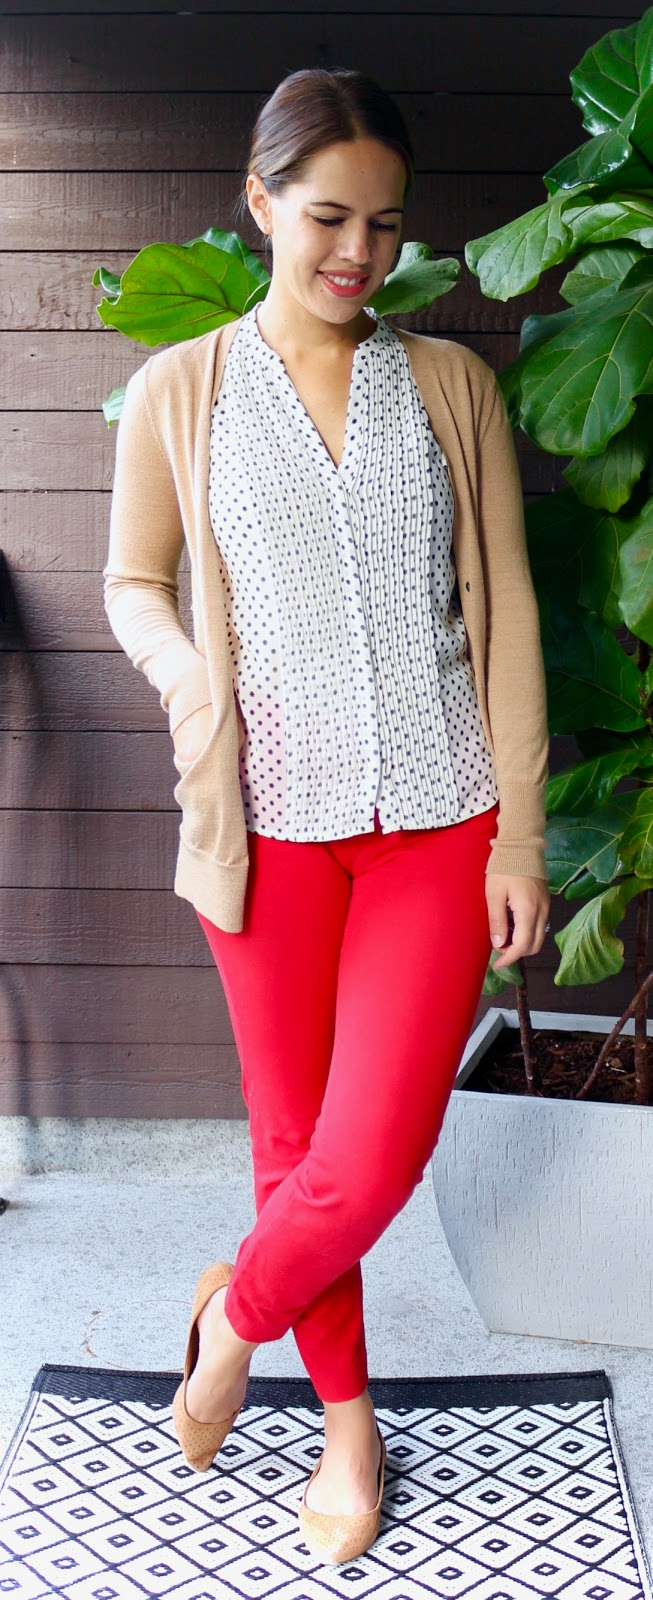 Jules in Flats - Red Ankle Pants with Polka Dot Blouse and Camel (Business Casual Fall Workwear on a Budget)